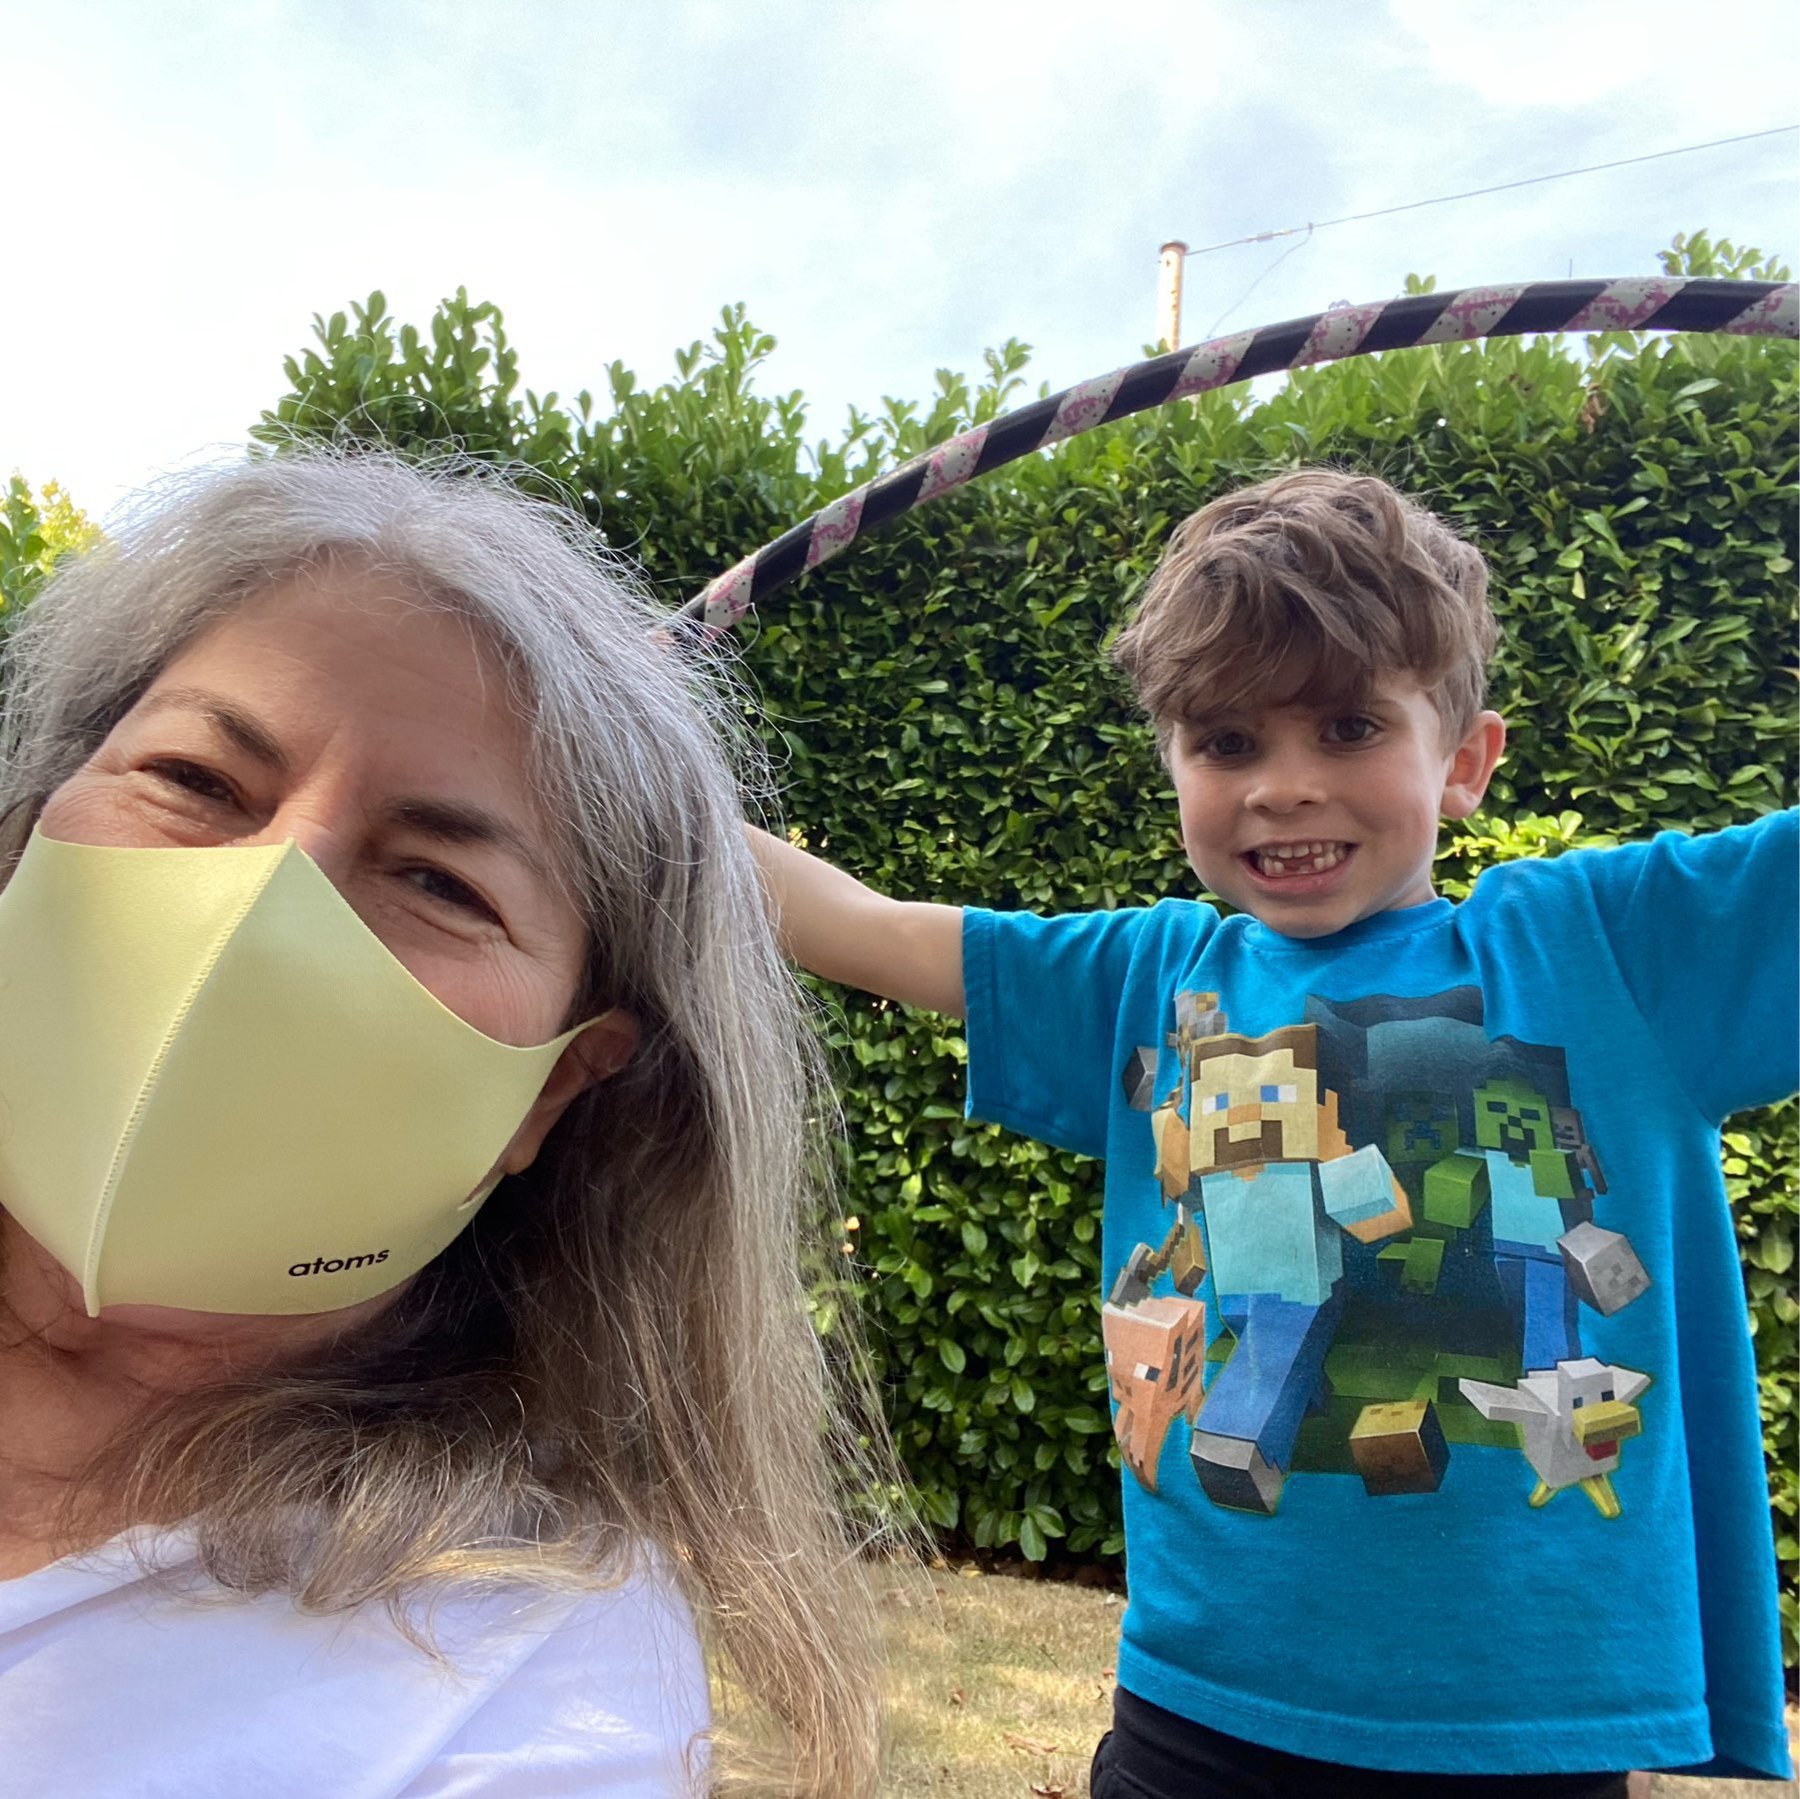 me in a mask, nephew with a hula hoop